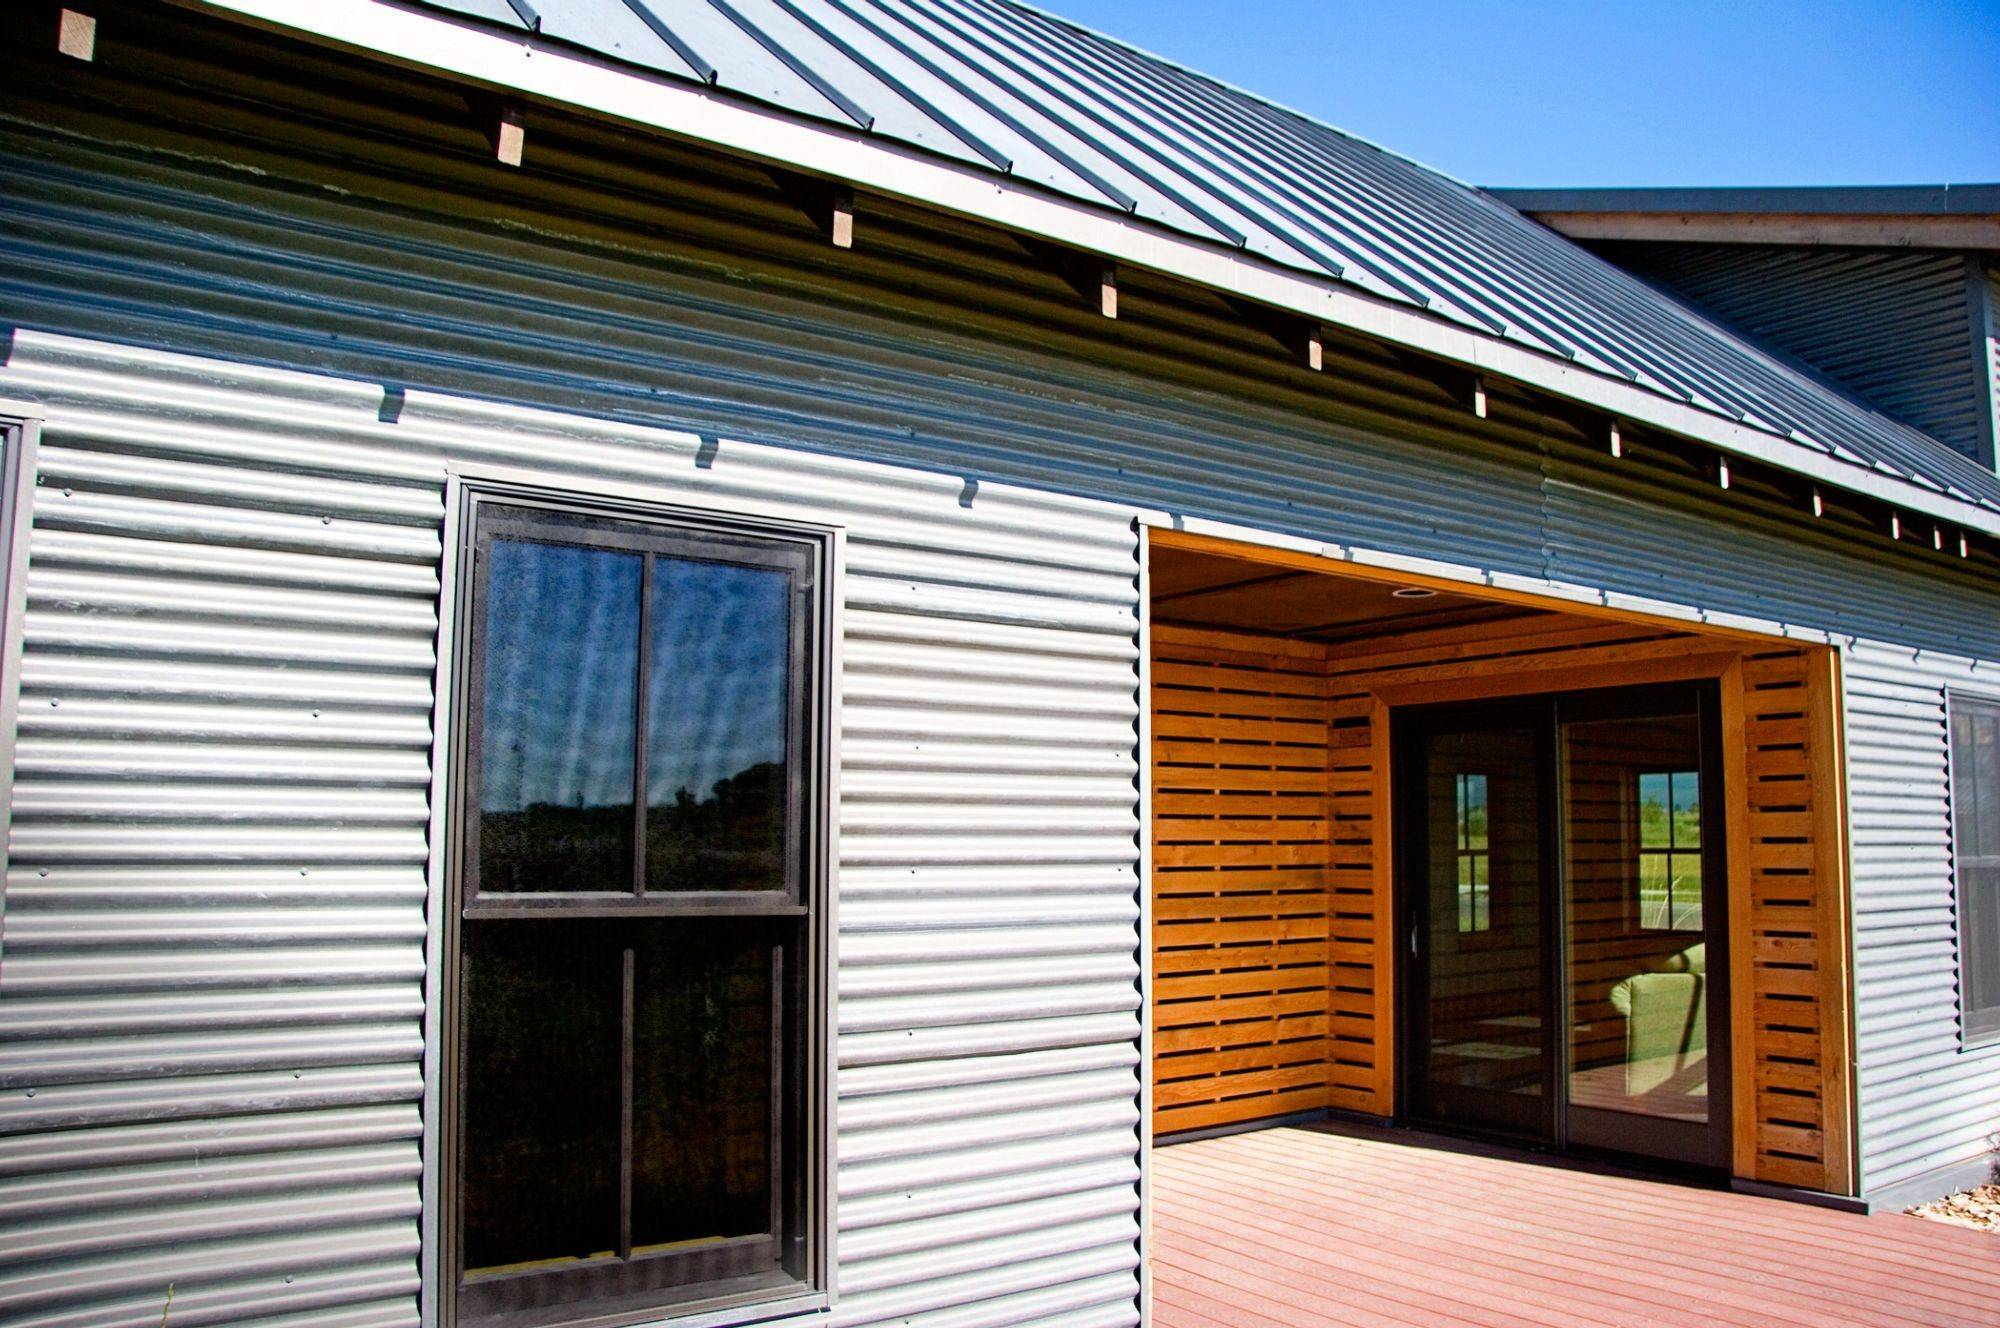 Decorate Exterior Using Corrugated Metal Siding - Get in ...